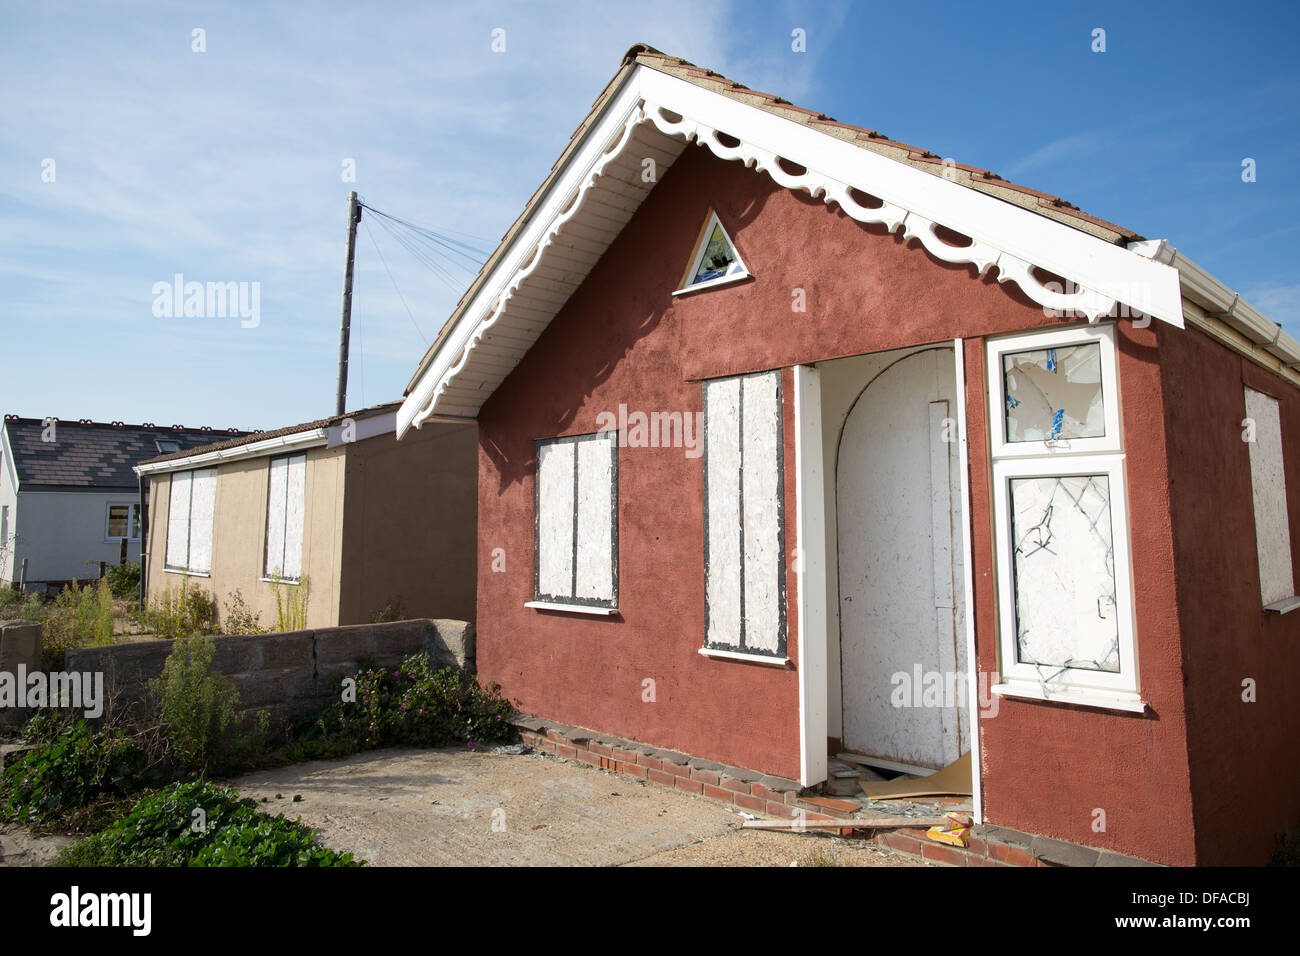 Jaywick, Brooklands Estate, Essex coastal town, considered the most deprived community in England, UK Stock Photo